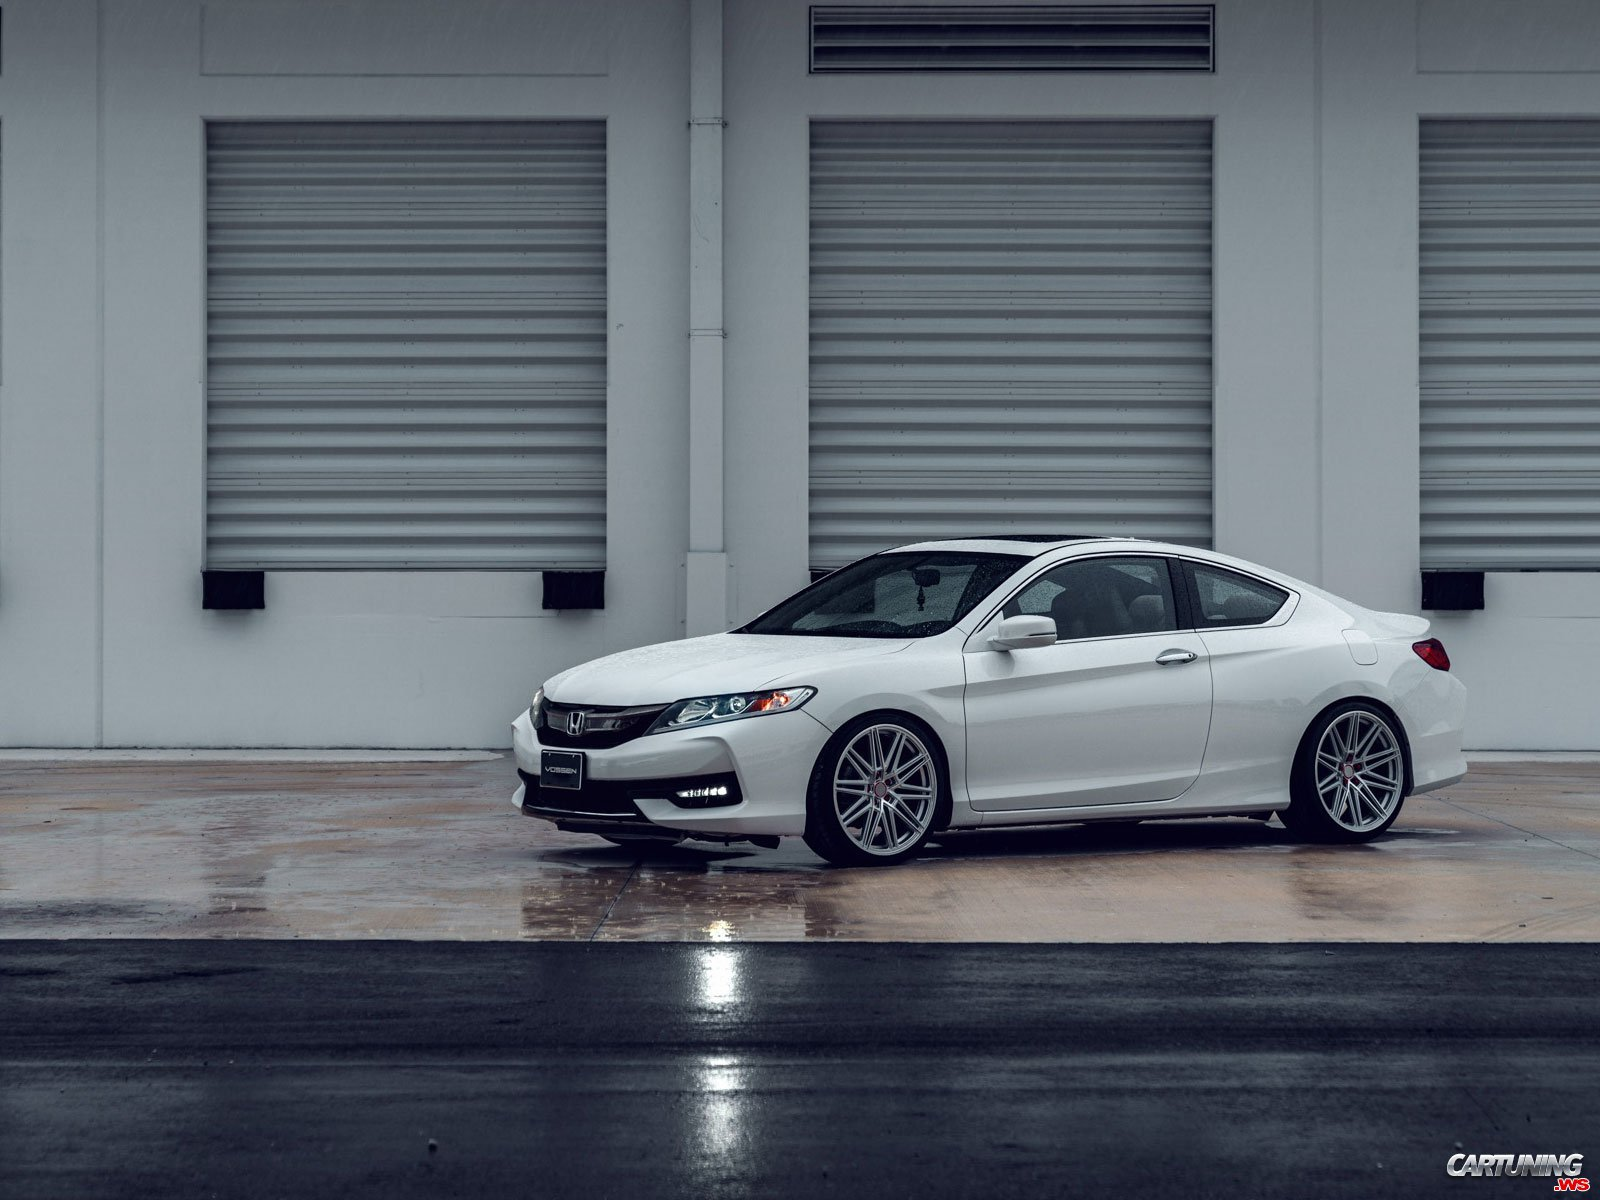 Tuning Honda Accord Coupe 2016 Front And Side